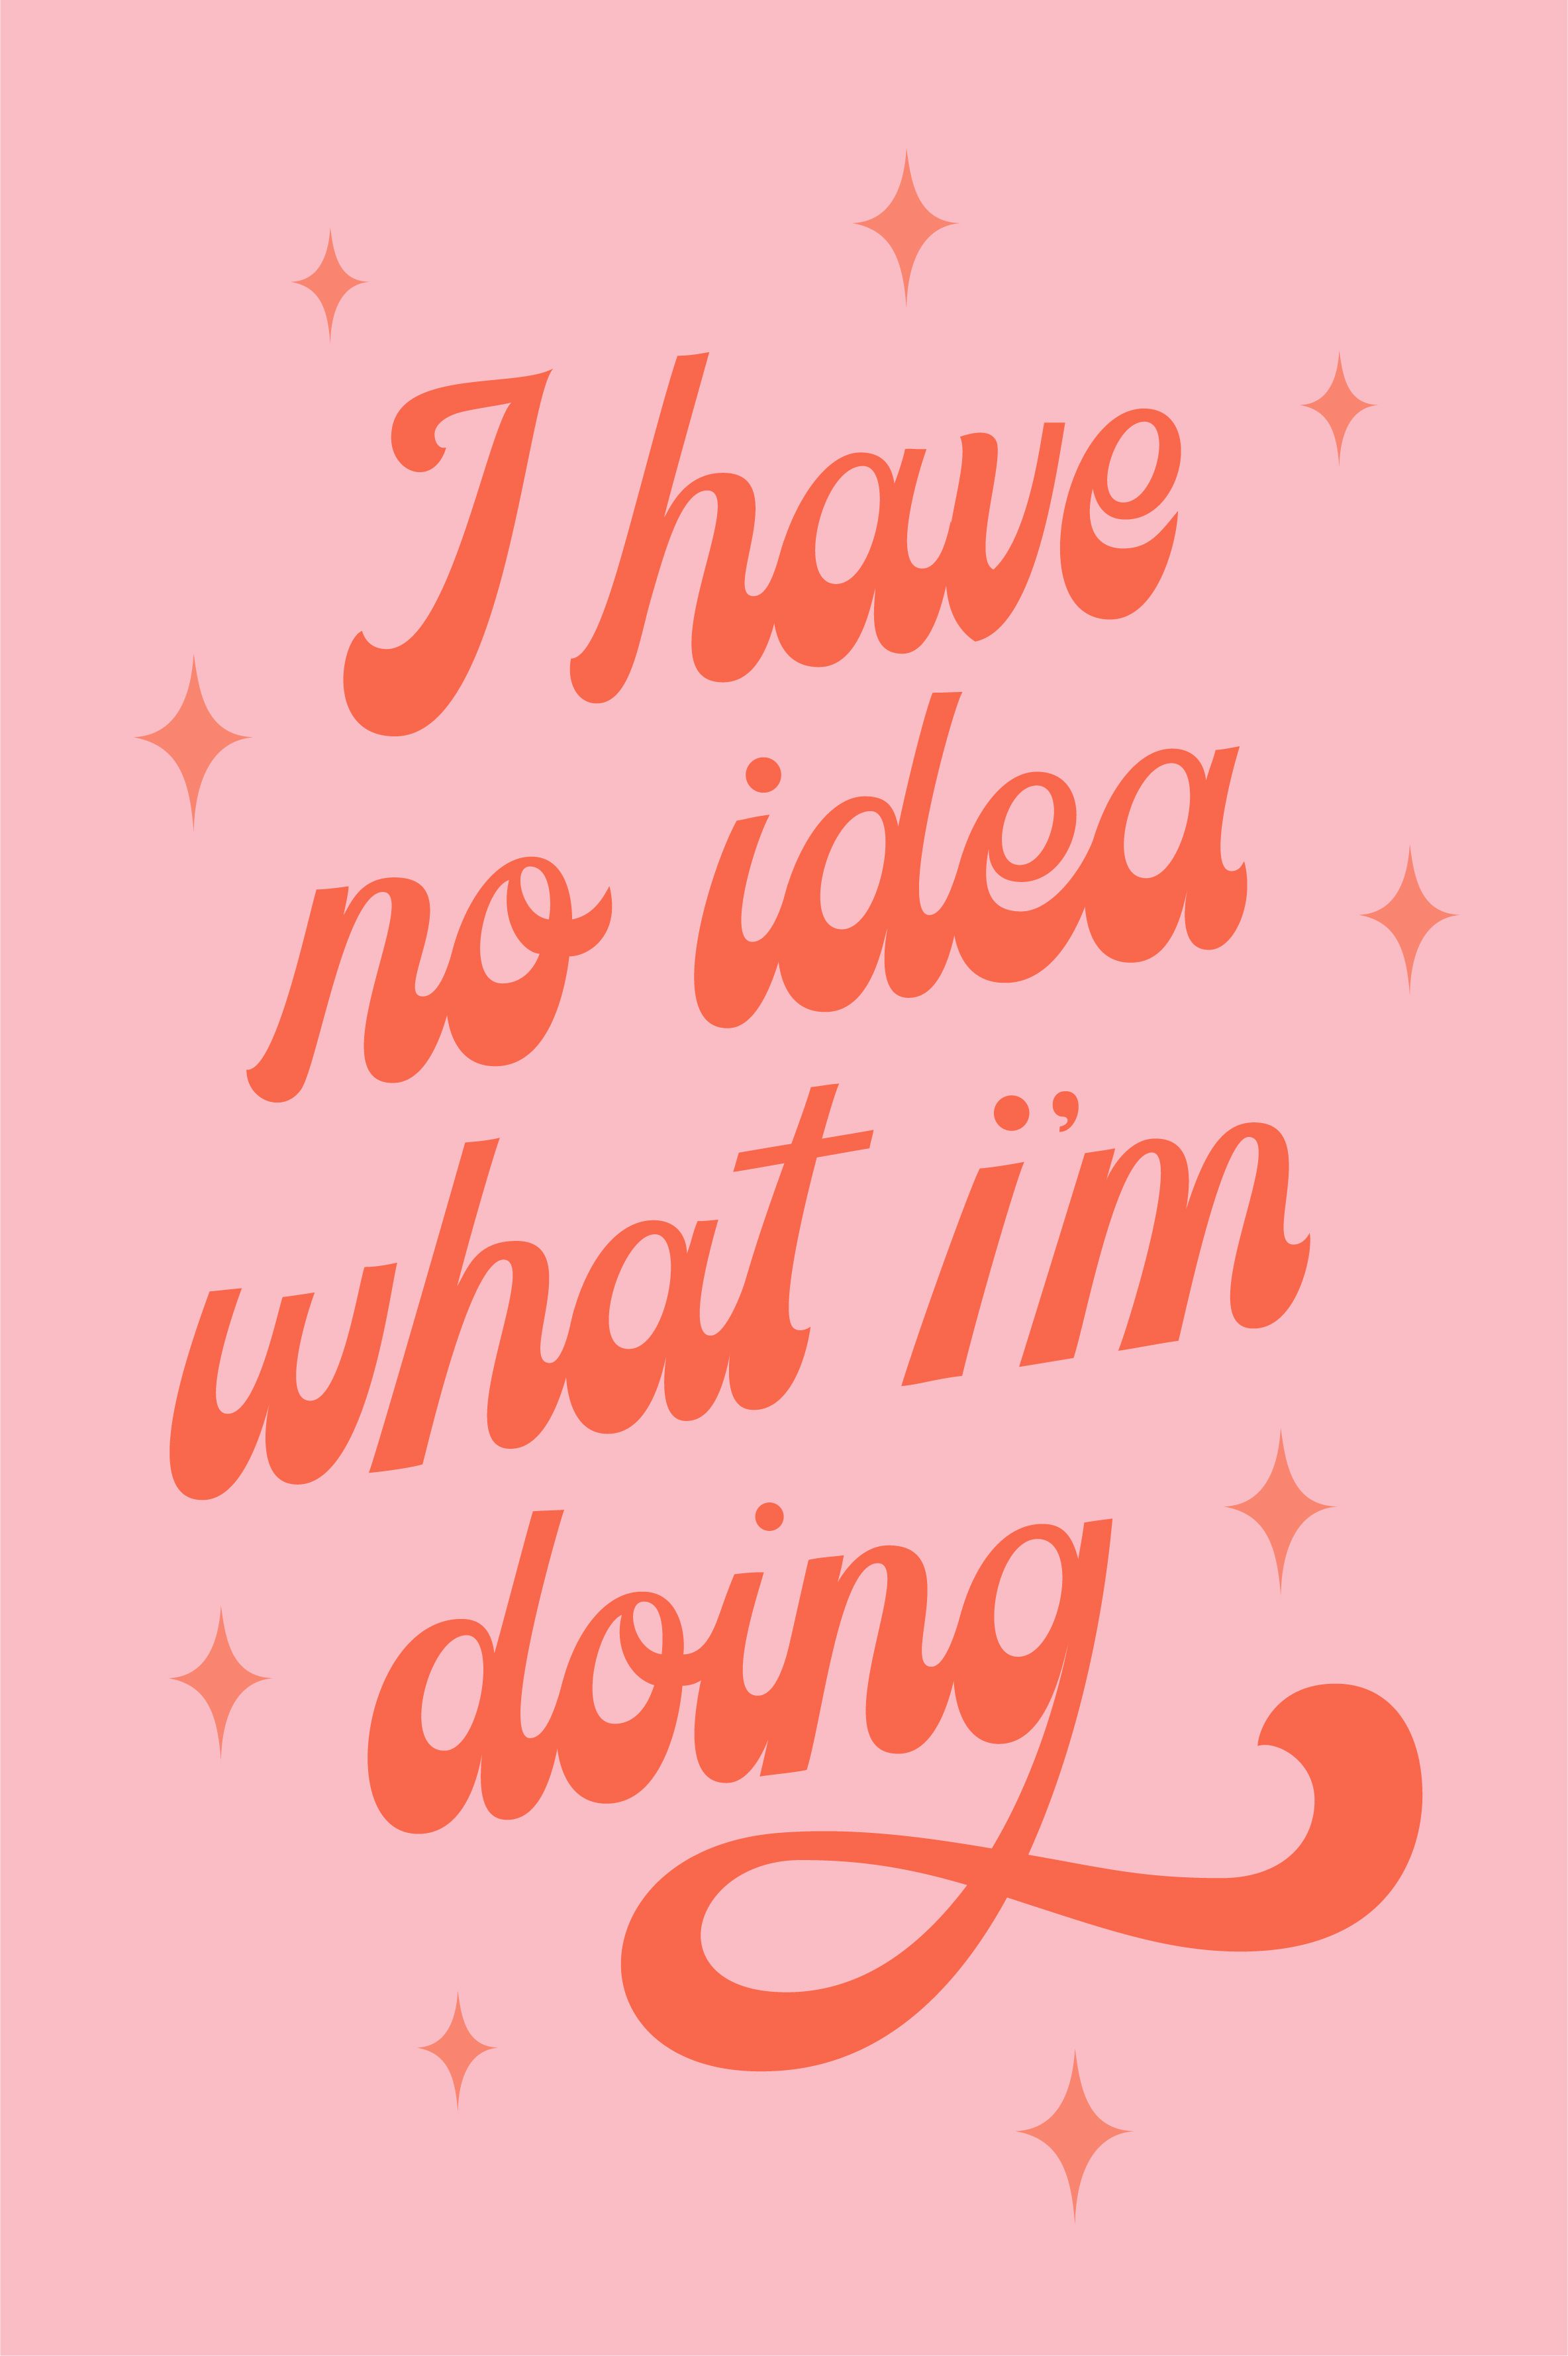 Groovy Motivational Hand Lettered Quote By Jackieriveraaa Funny Adventure Quotes Groovy Quote Funny Quotes About Life